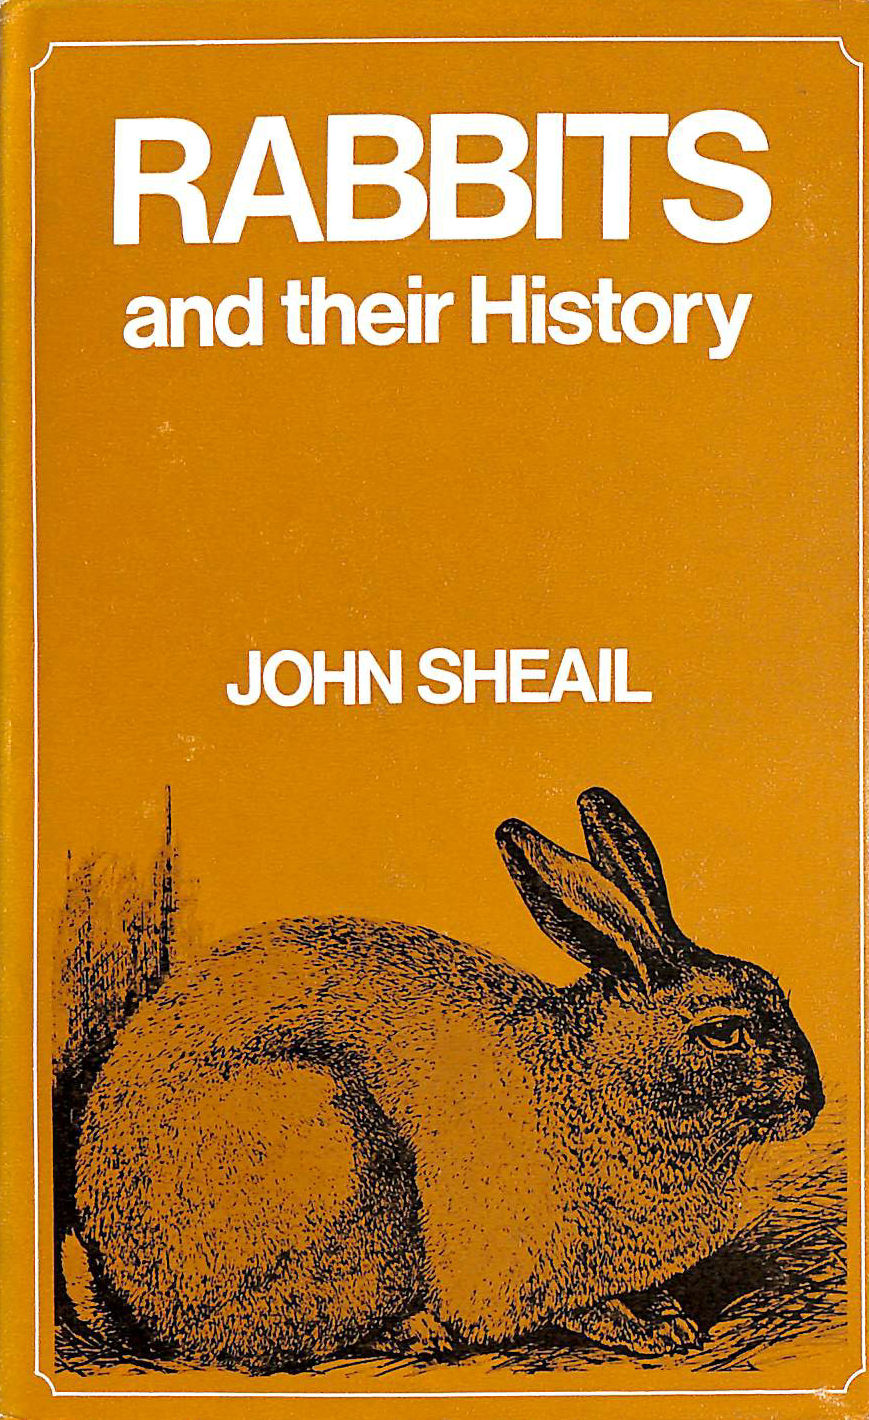 Image for Rabbits and their History